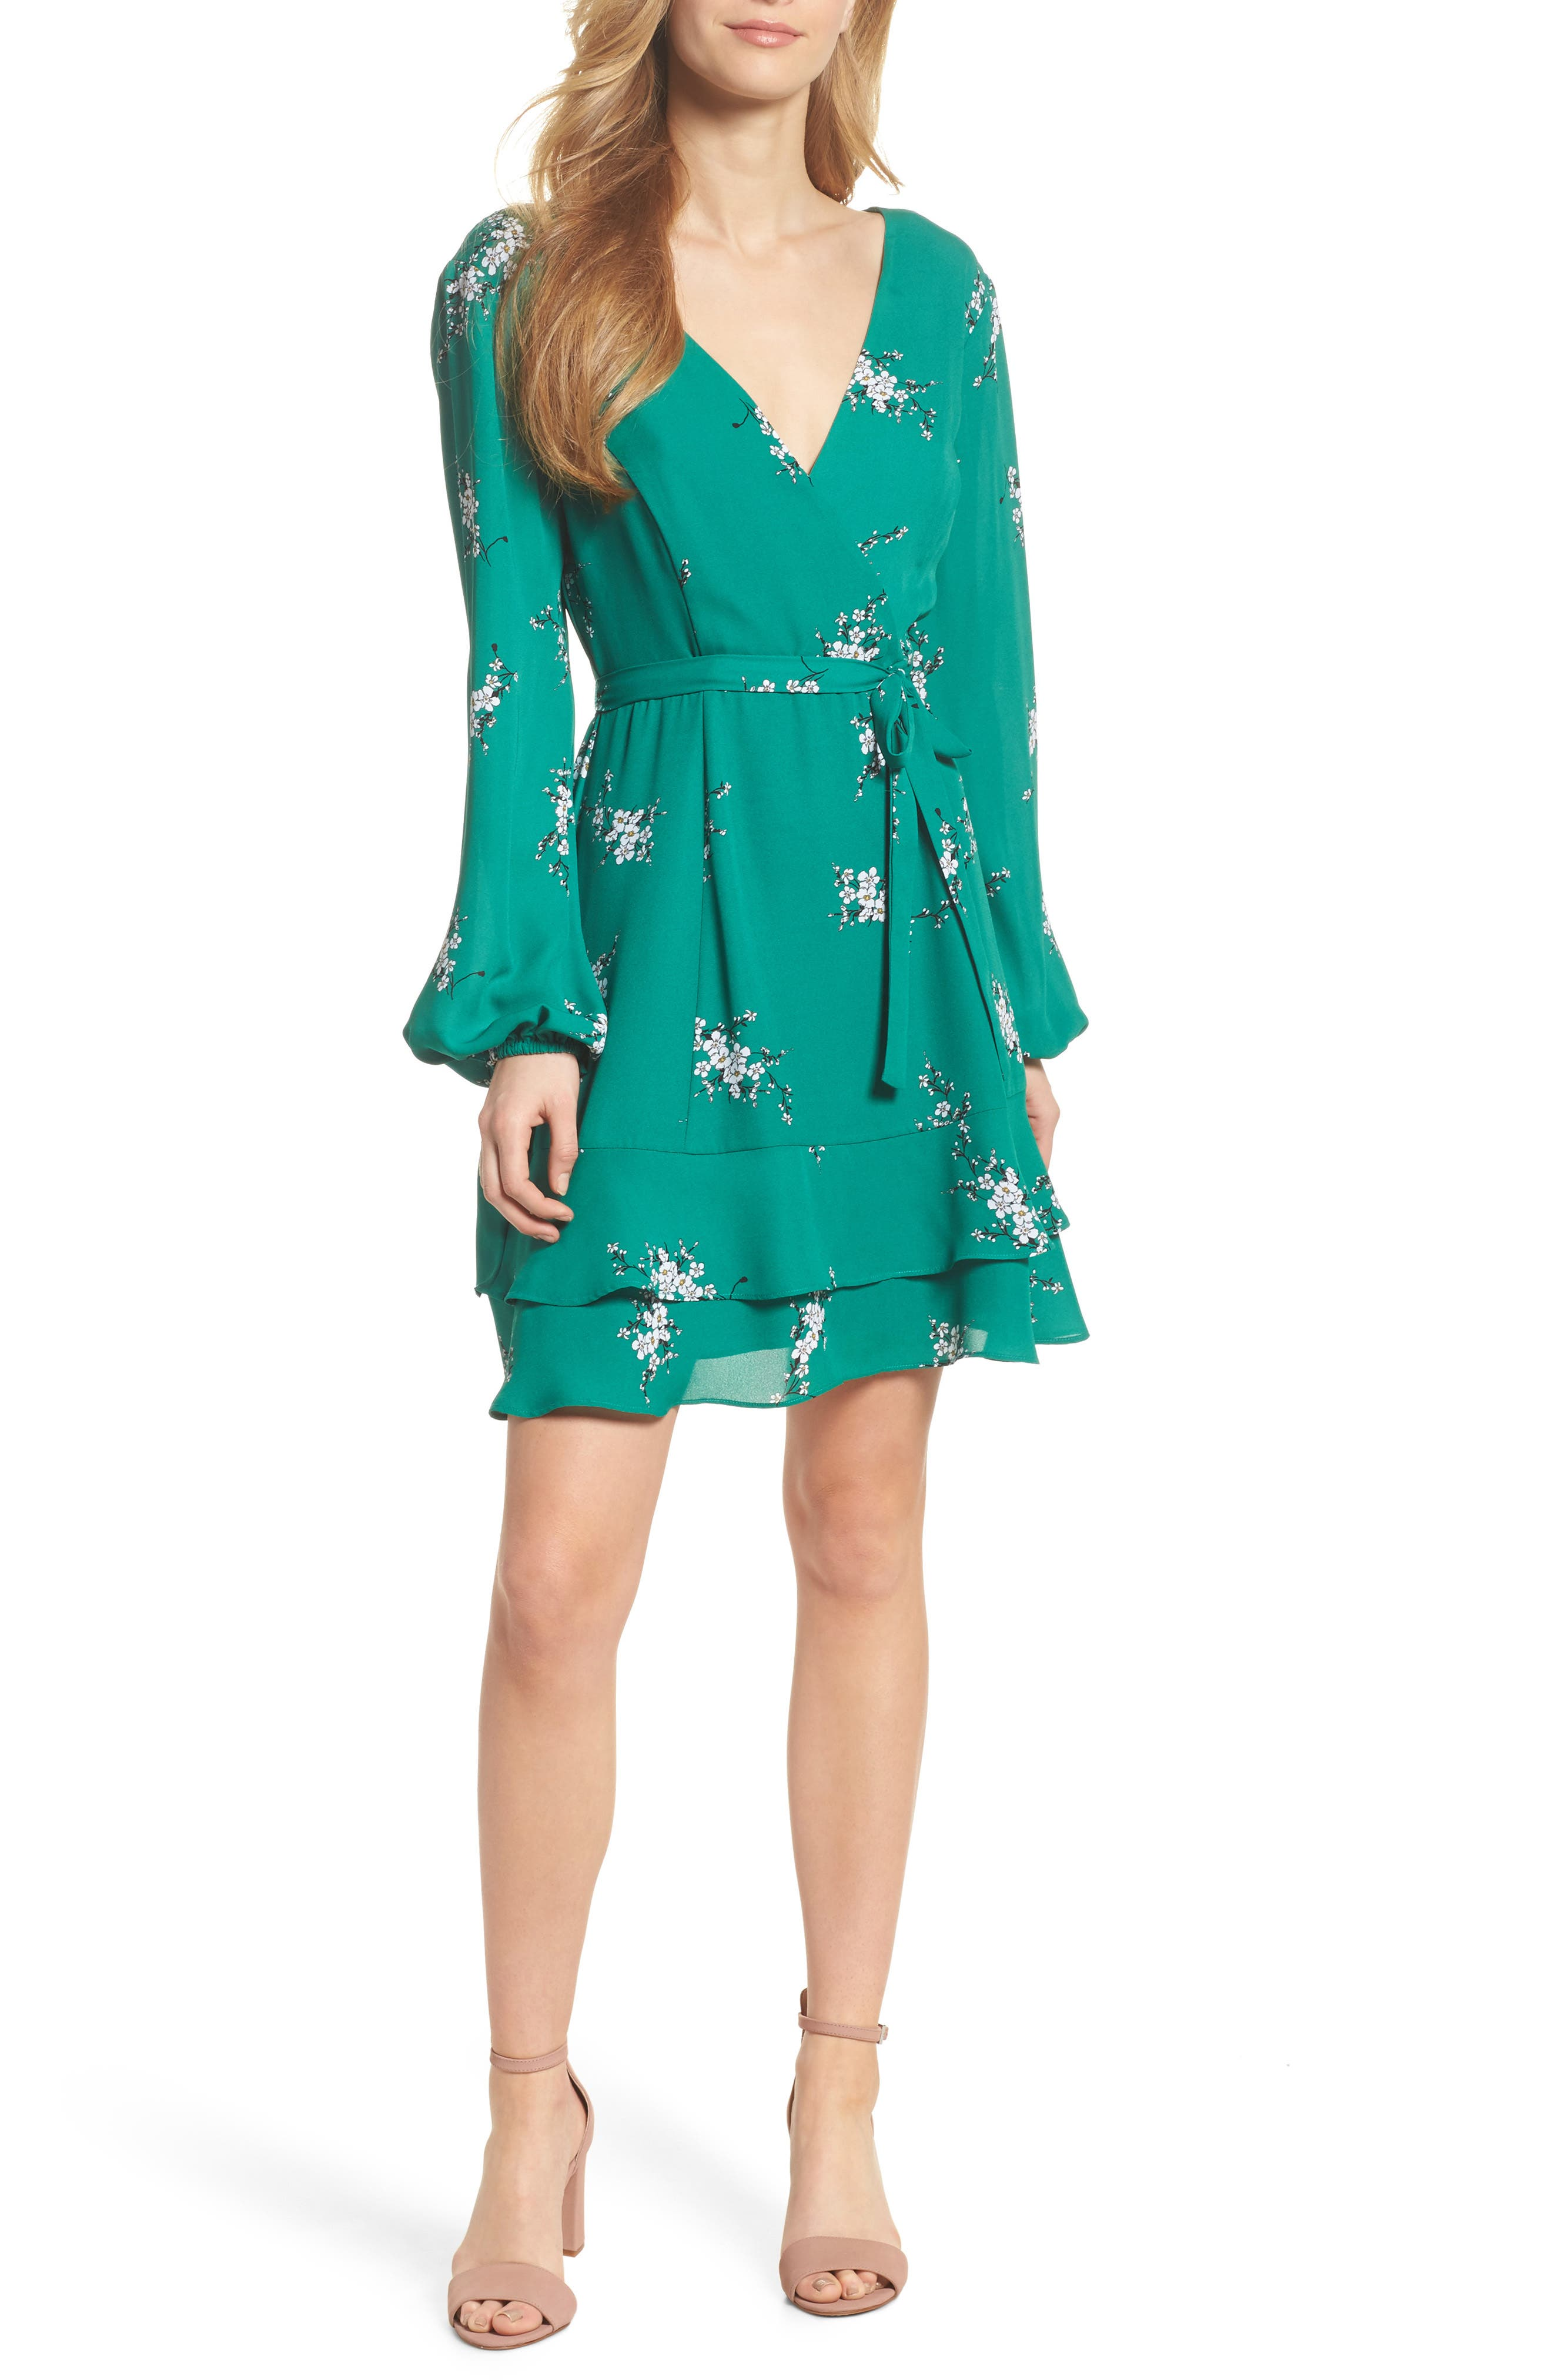 Alternate Image 1 Selected - Chelsea28 Floral Faux Wrap Dress